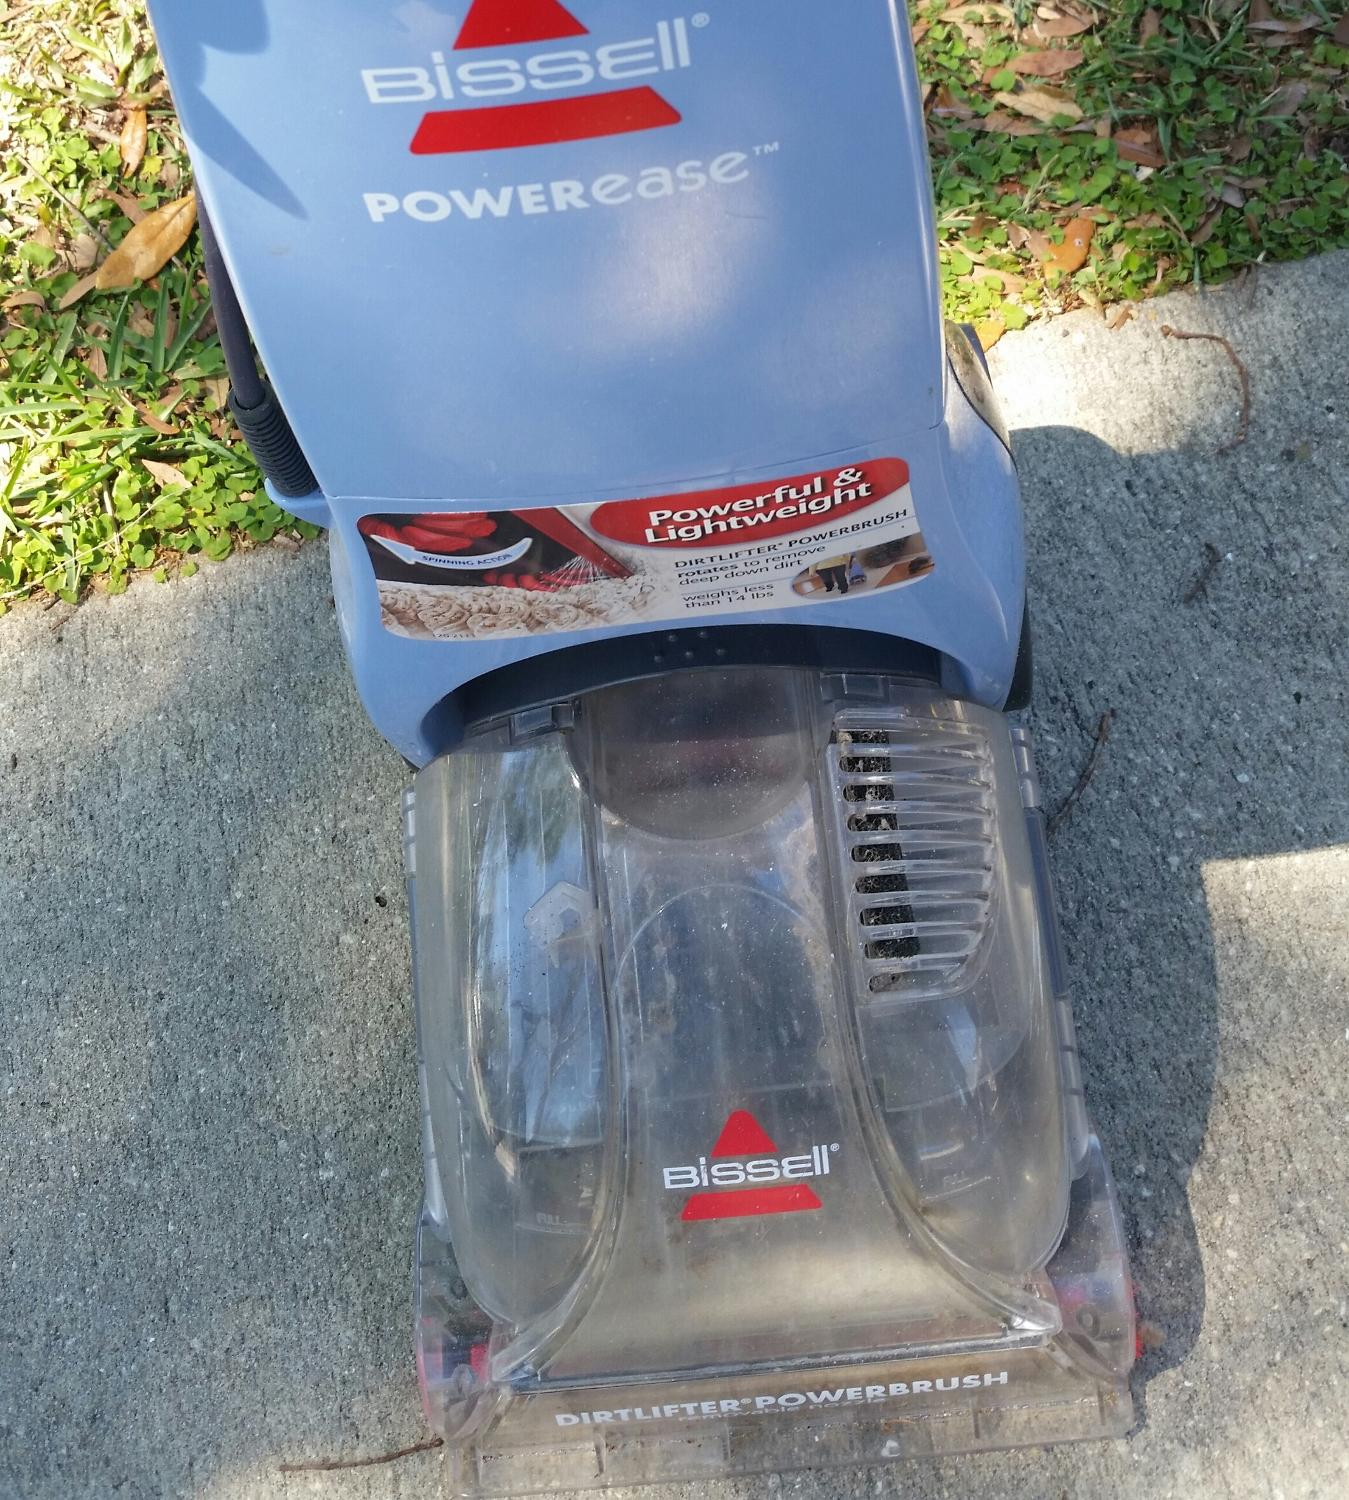 Best Bissell Powerease Carpet Cleaner For Sale In Deland